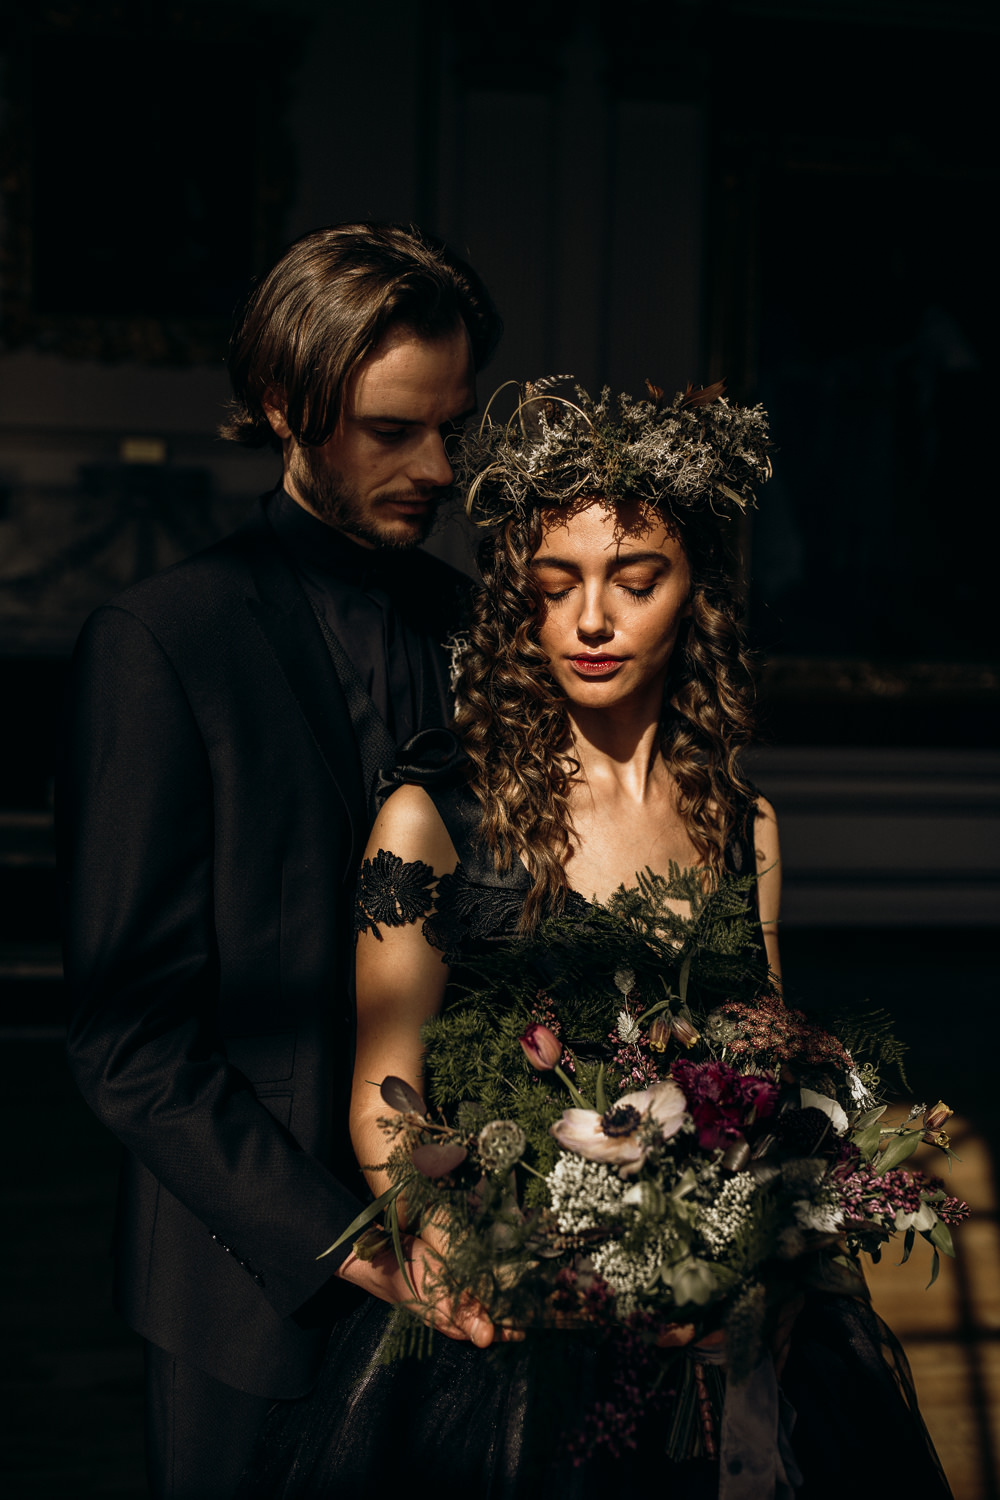 Magical & Moody Harry Potter Wedding Ideas